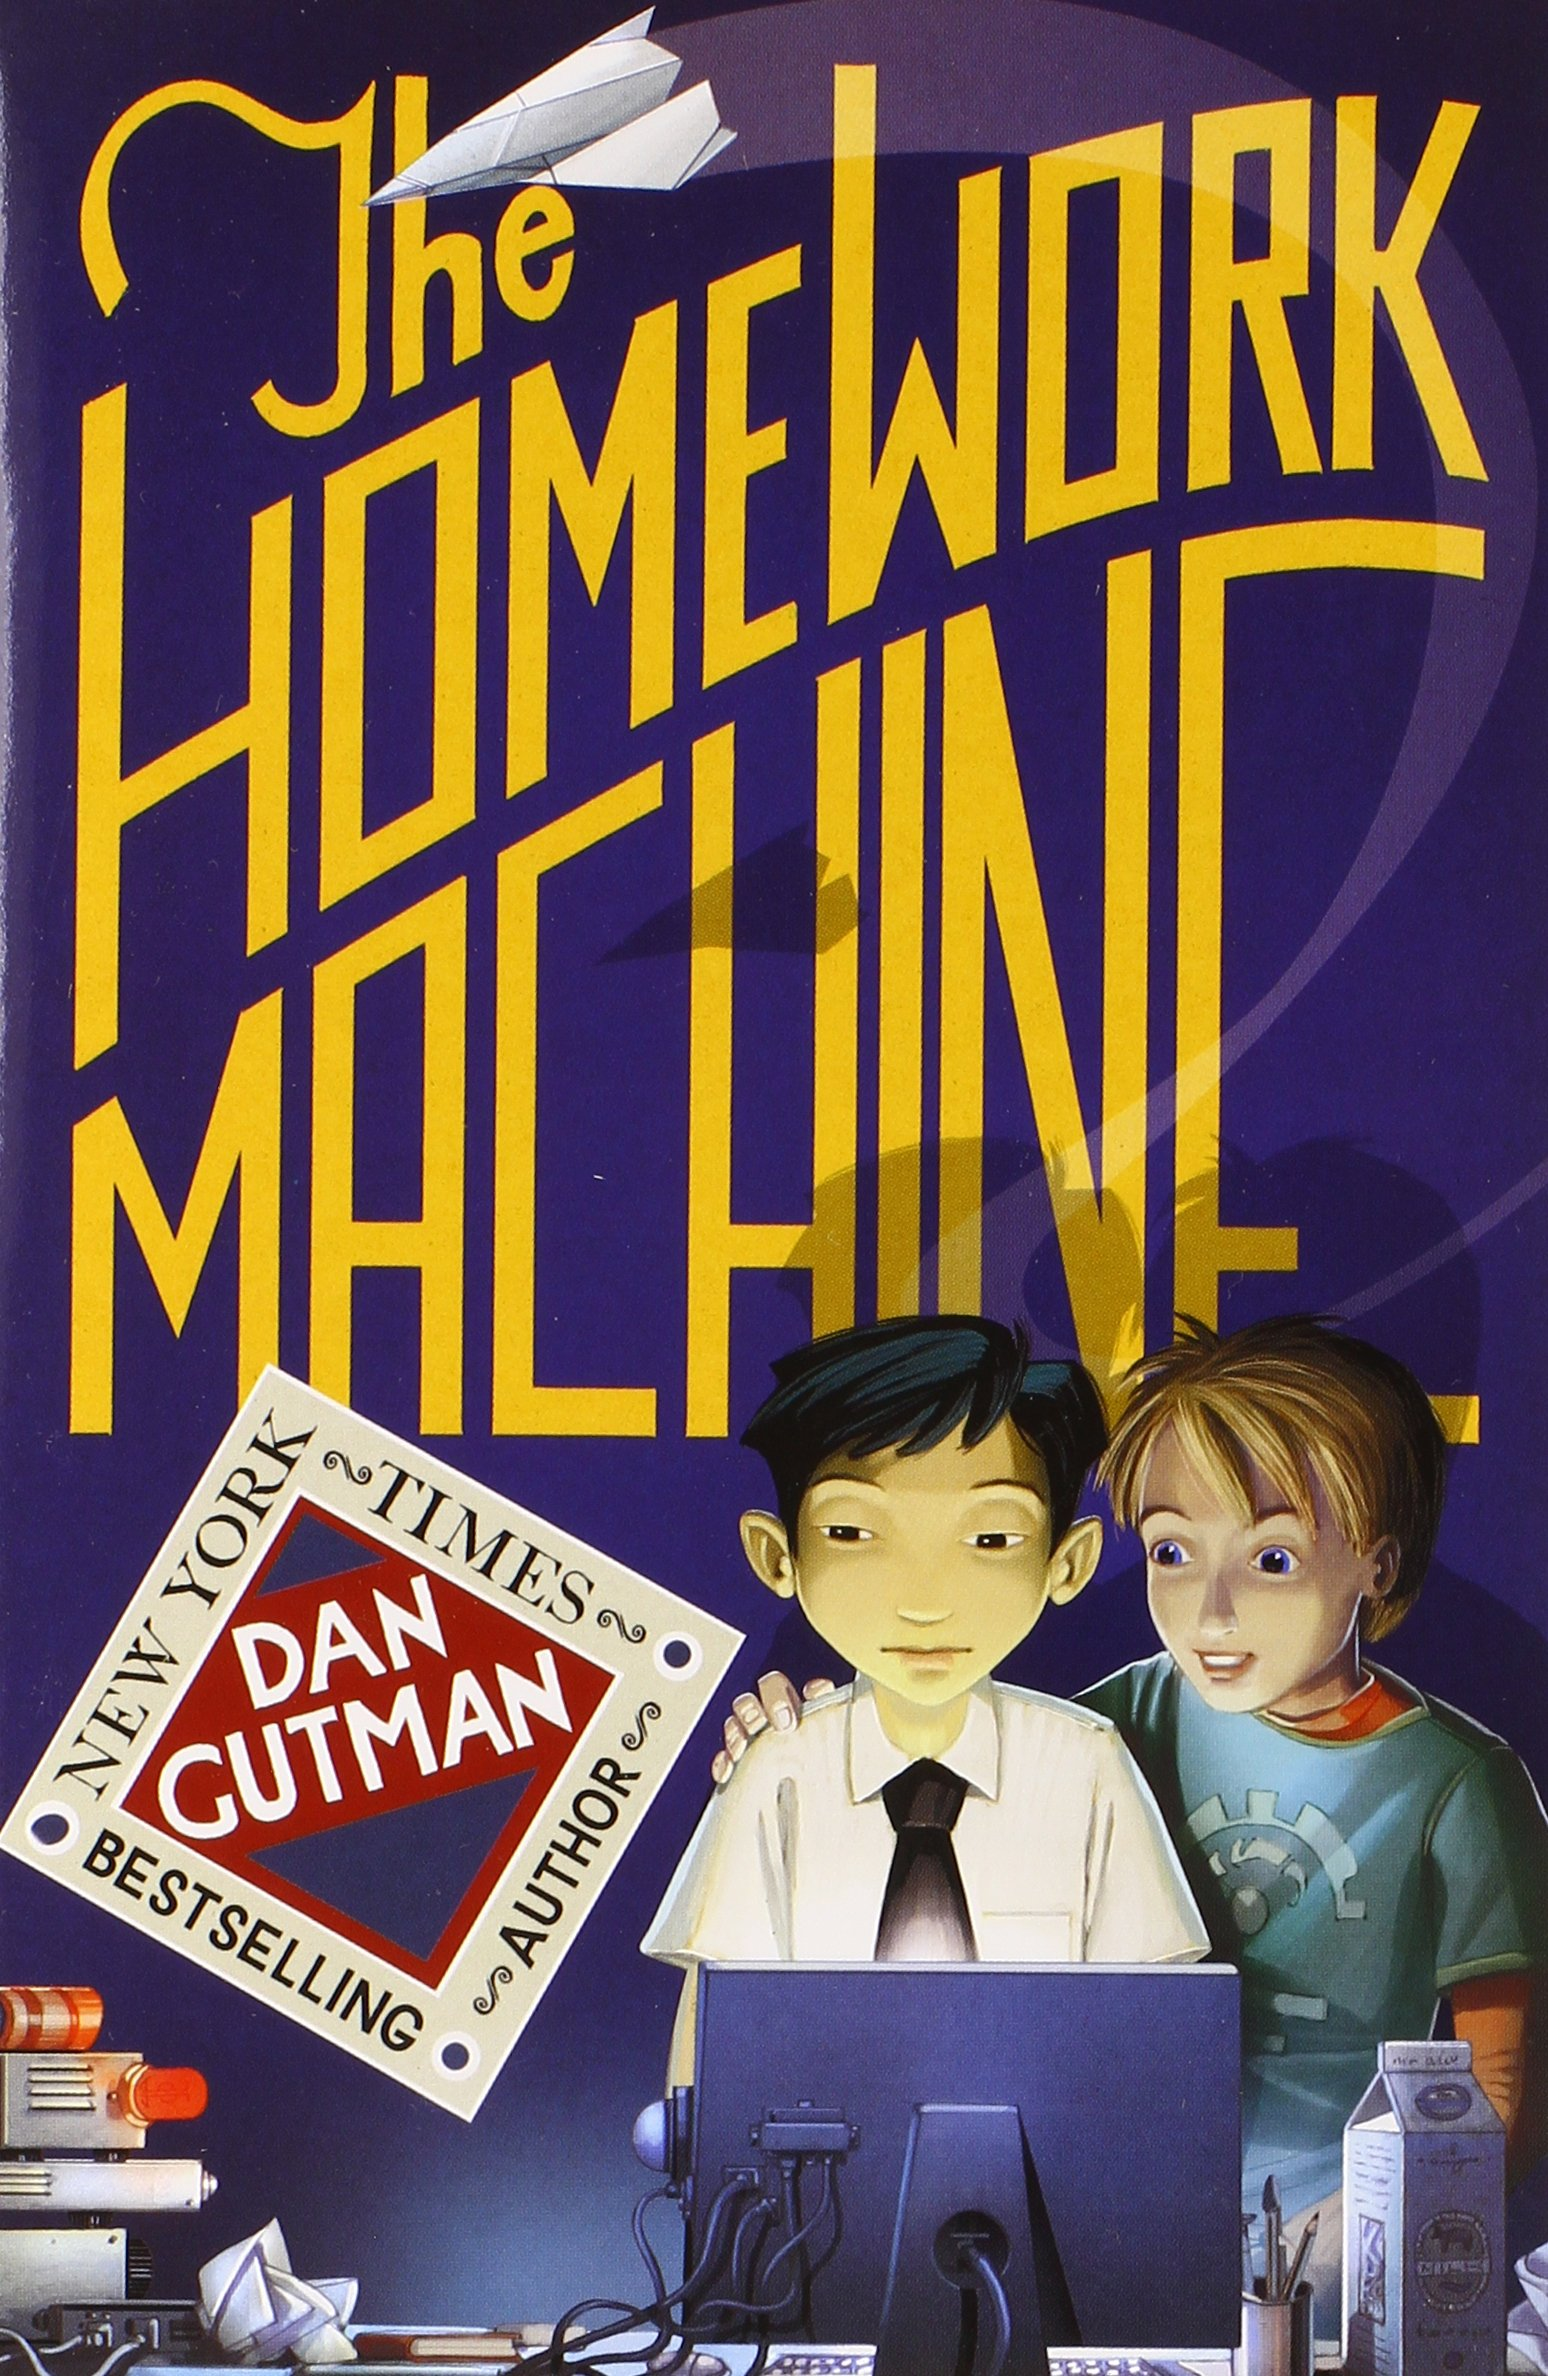 the homework machine by dan gutman summary